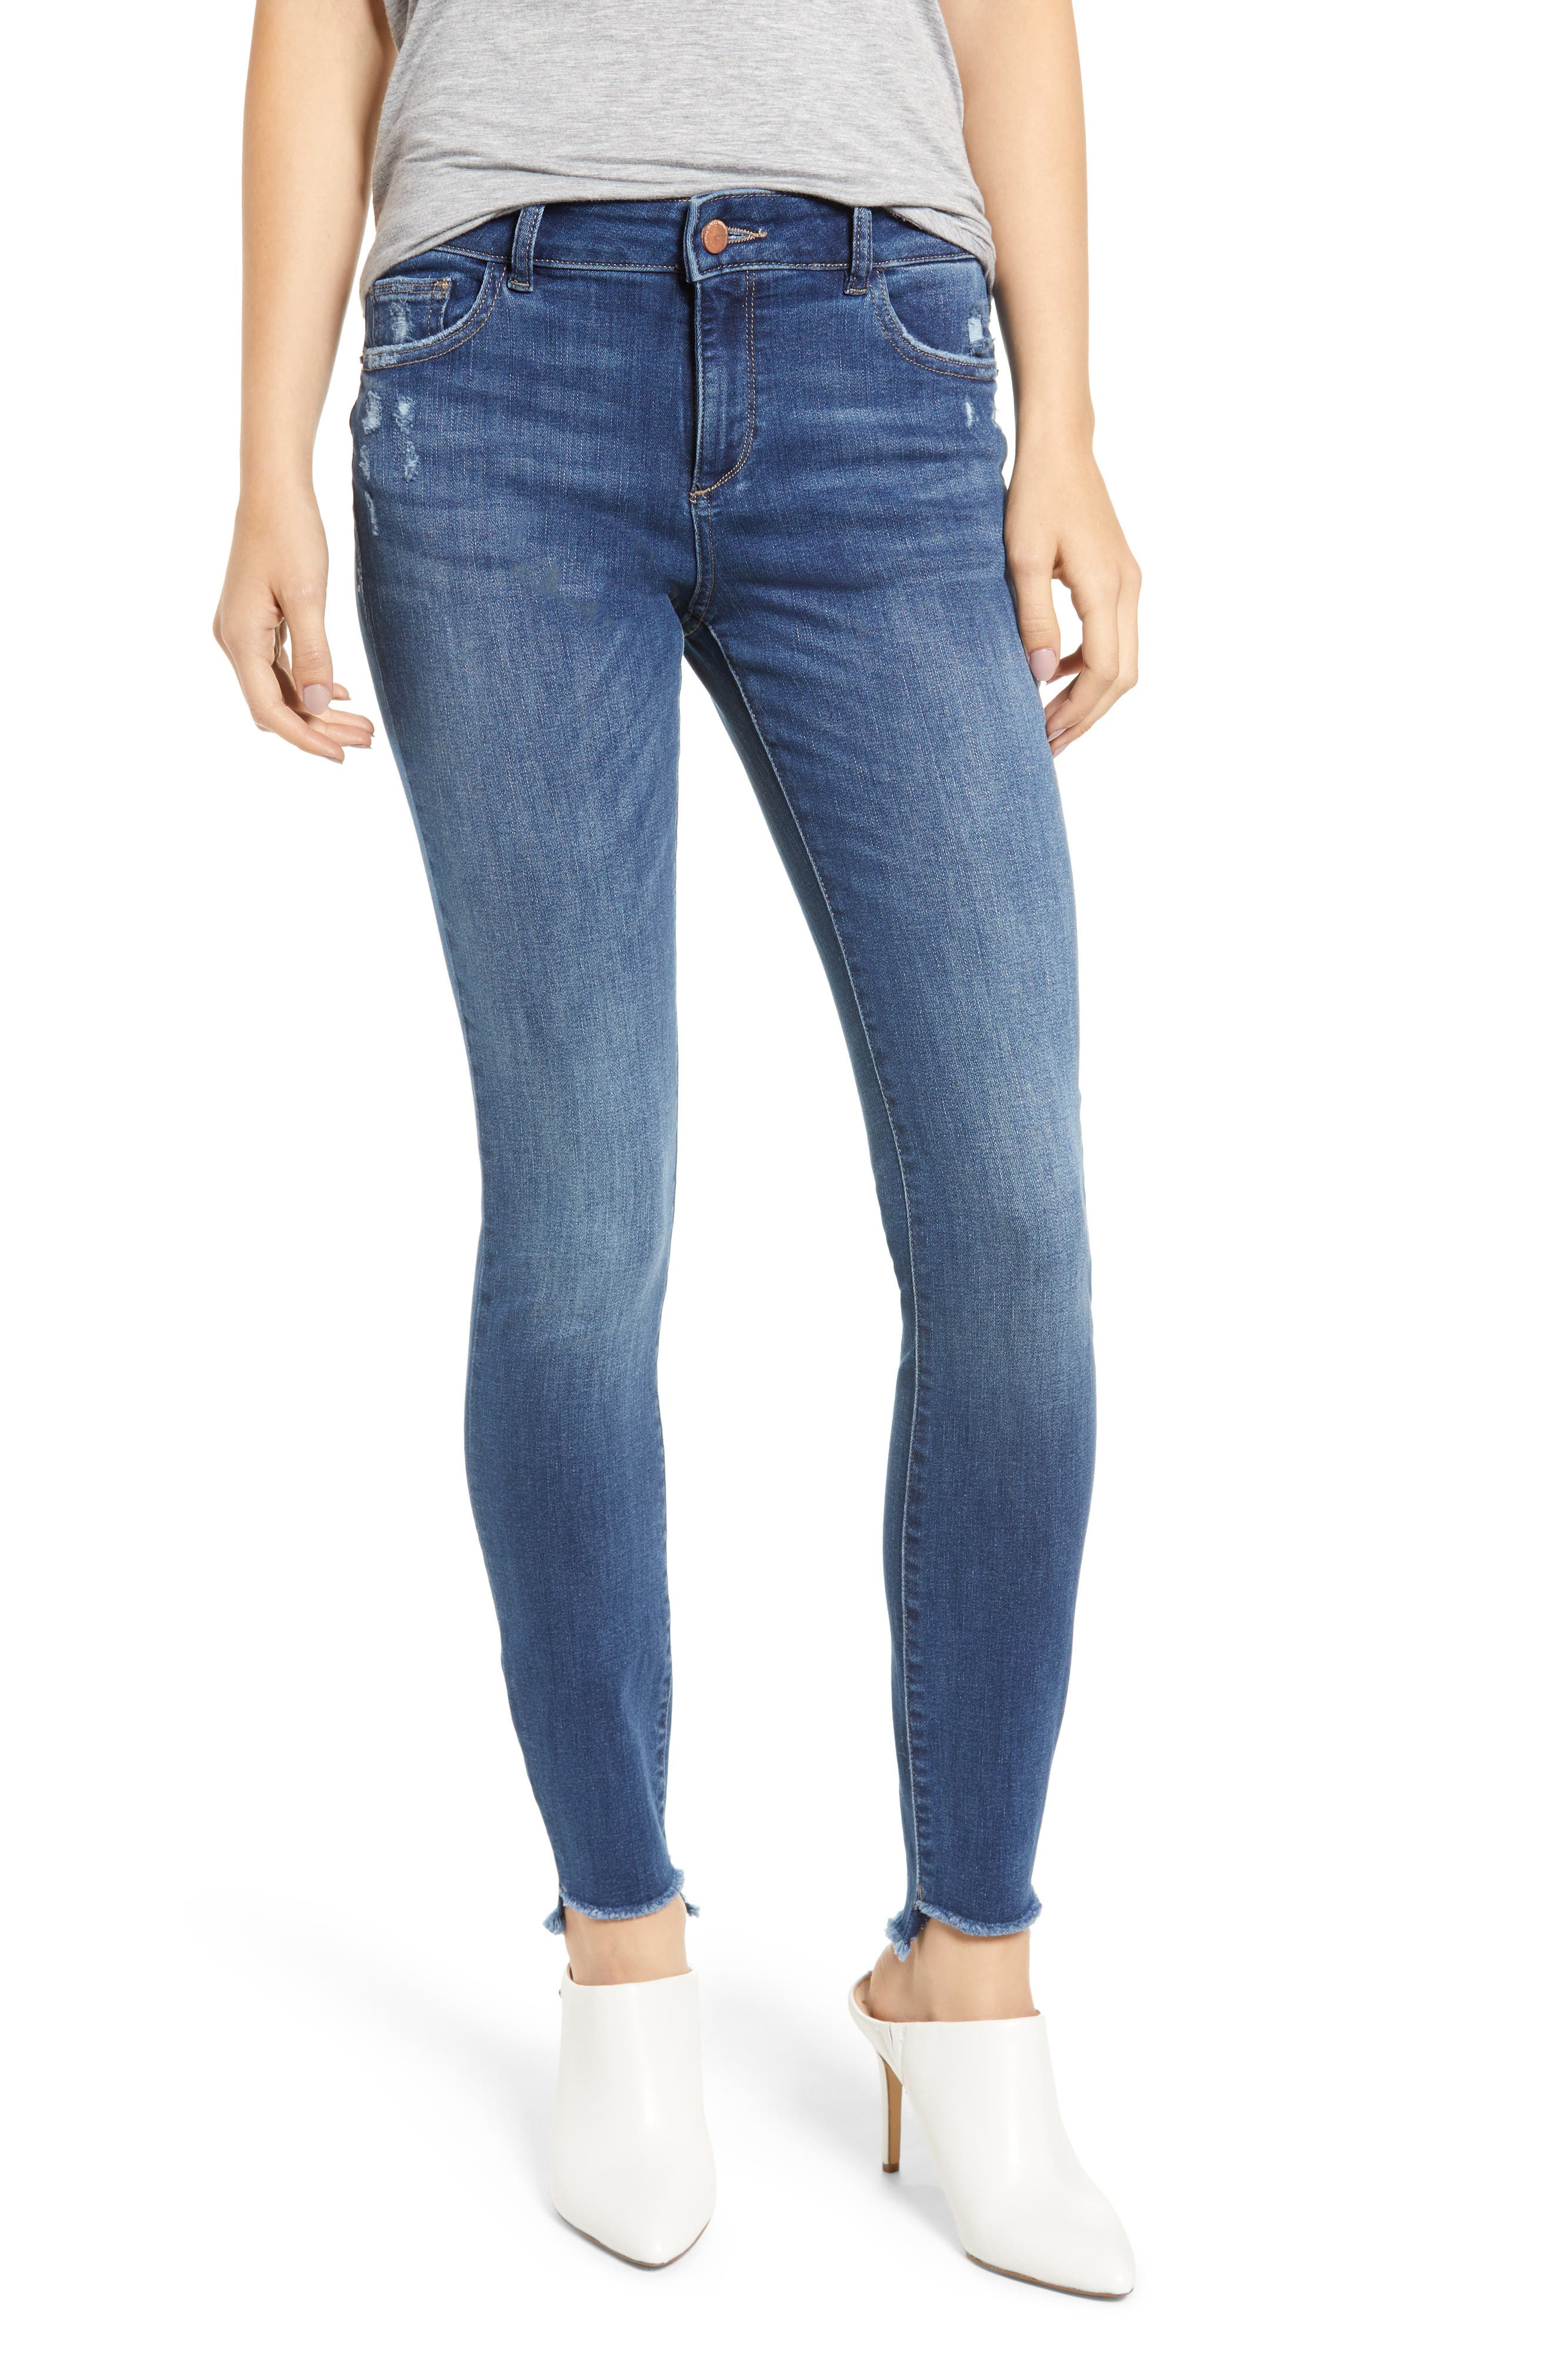 Florence Instasculpt High Waist Raw Step Hem Skinny Jeans,                             Main thumbnail 1, color,                             405